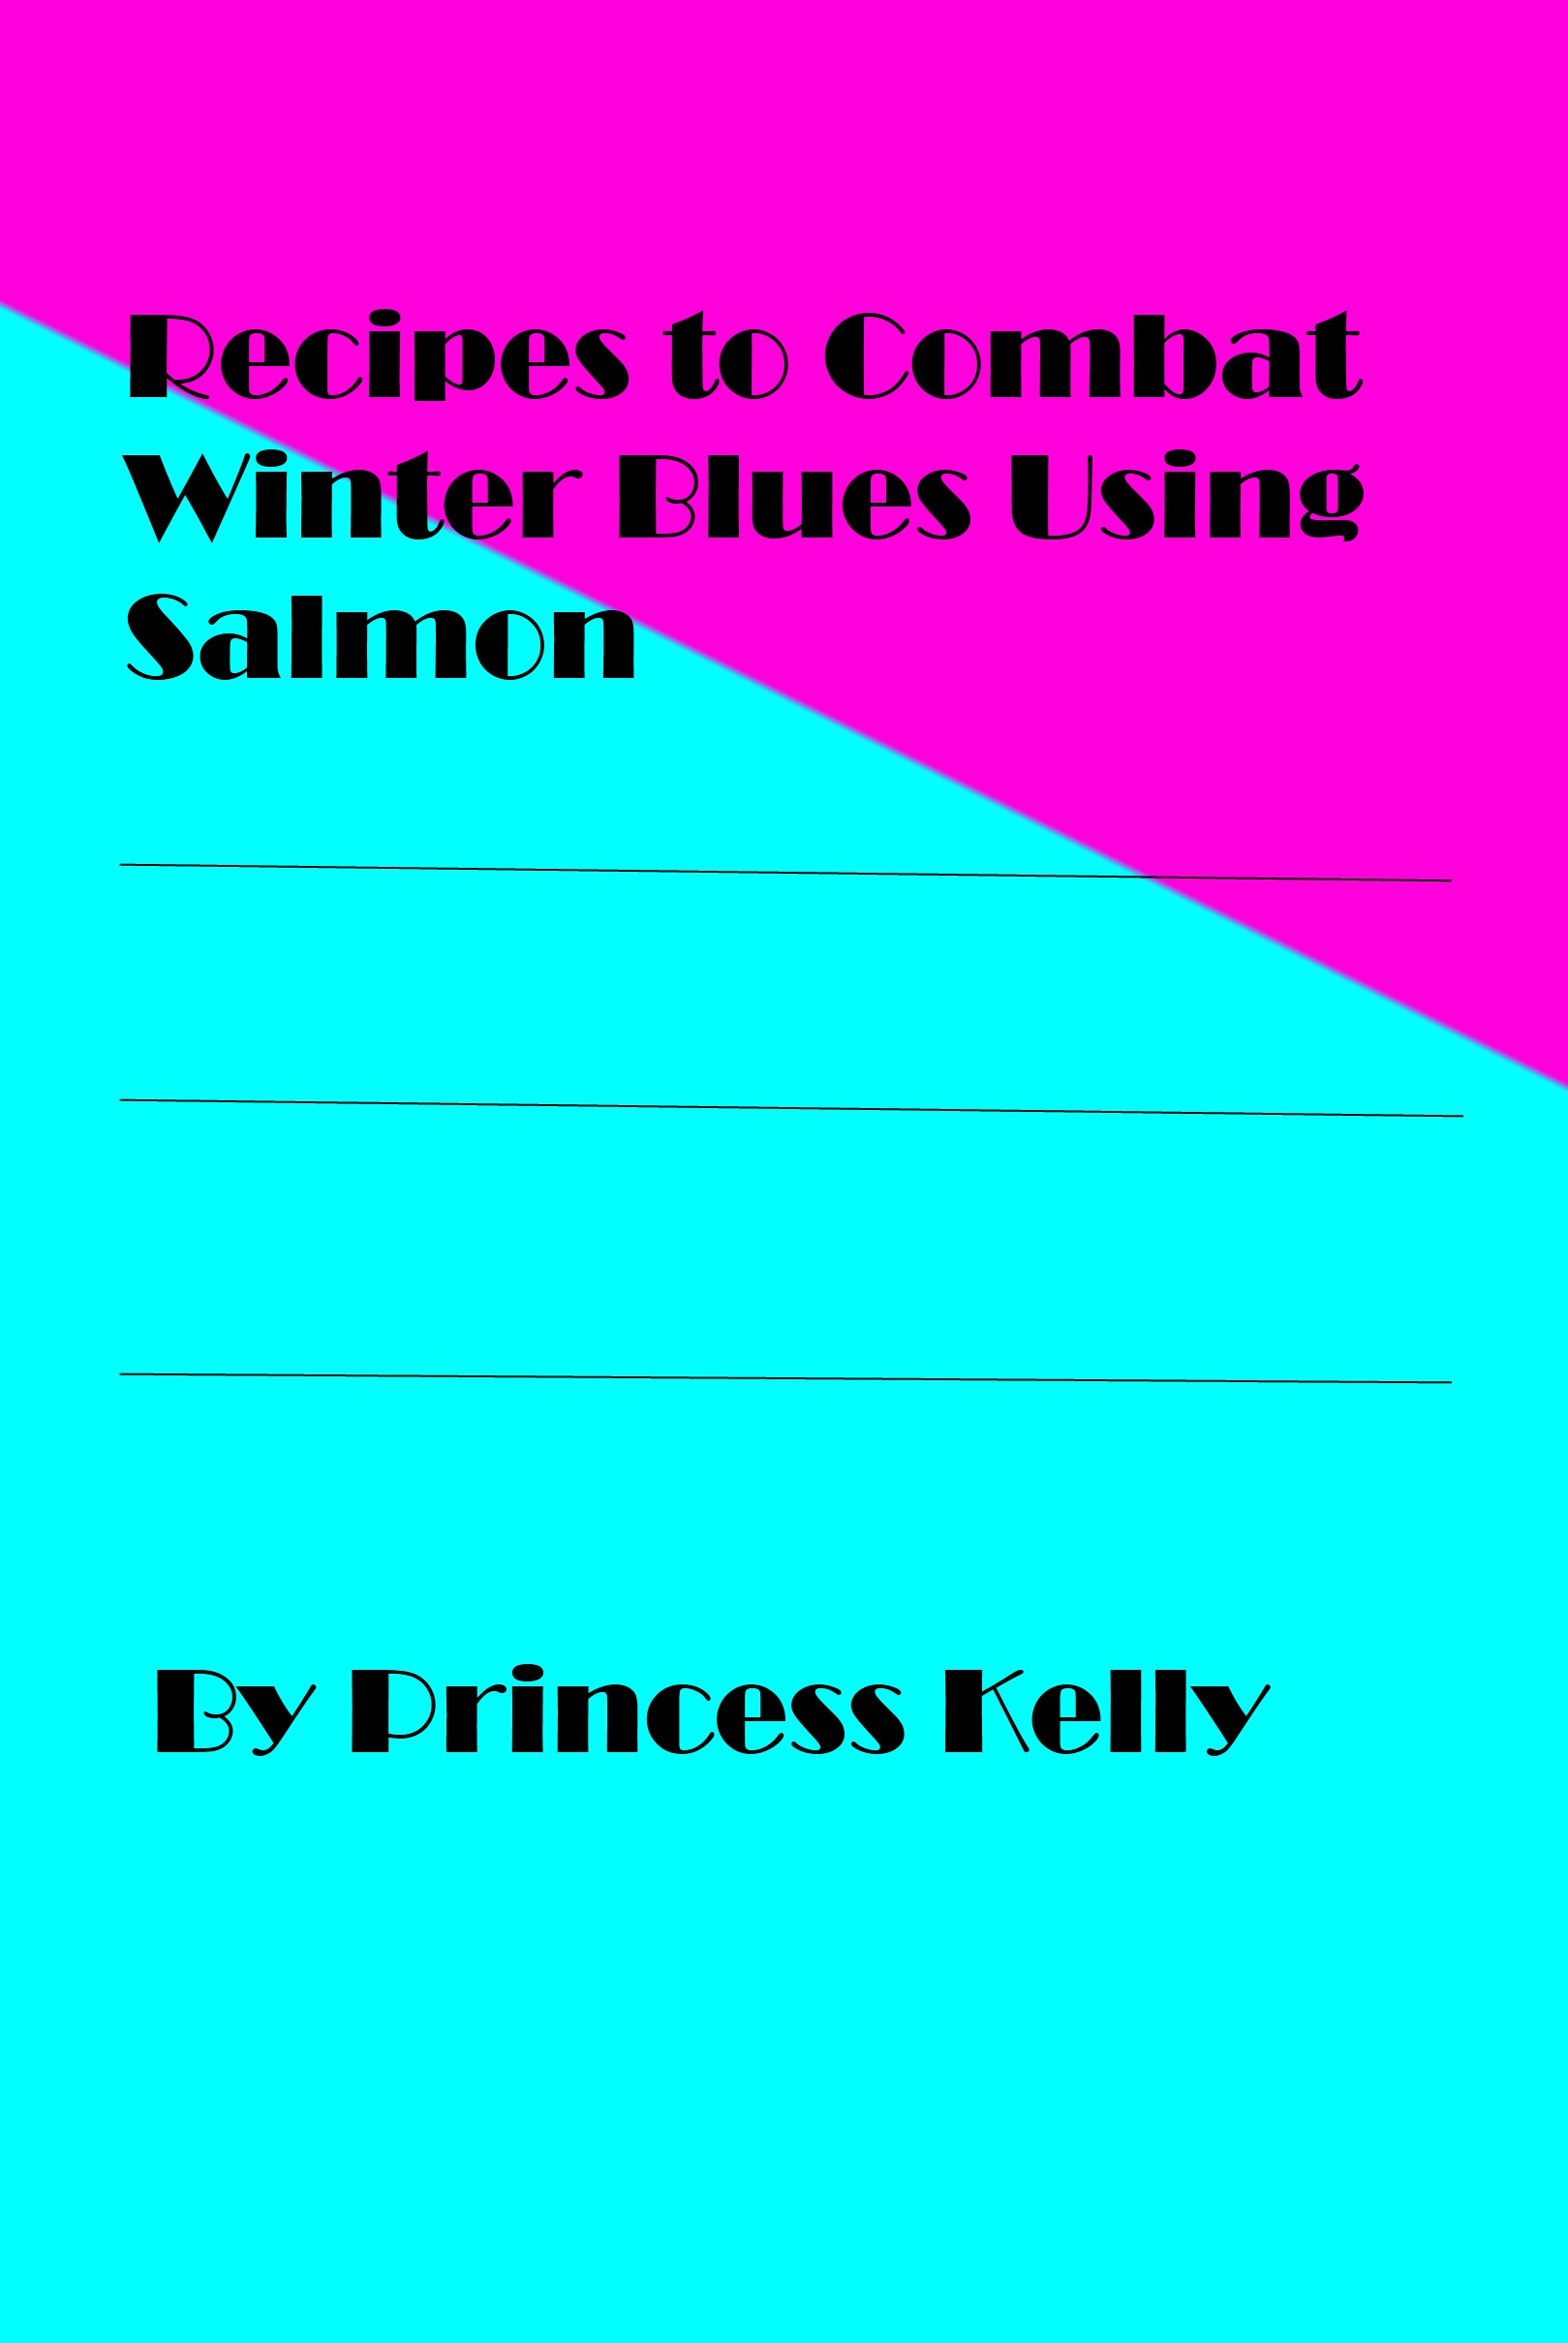 Recipes to Combat Winter Blues Using Salmon and Other Fish